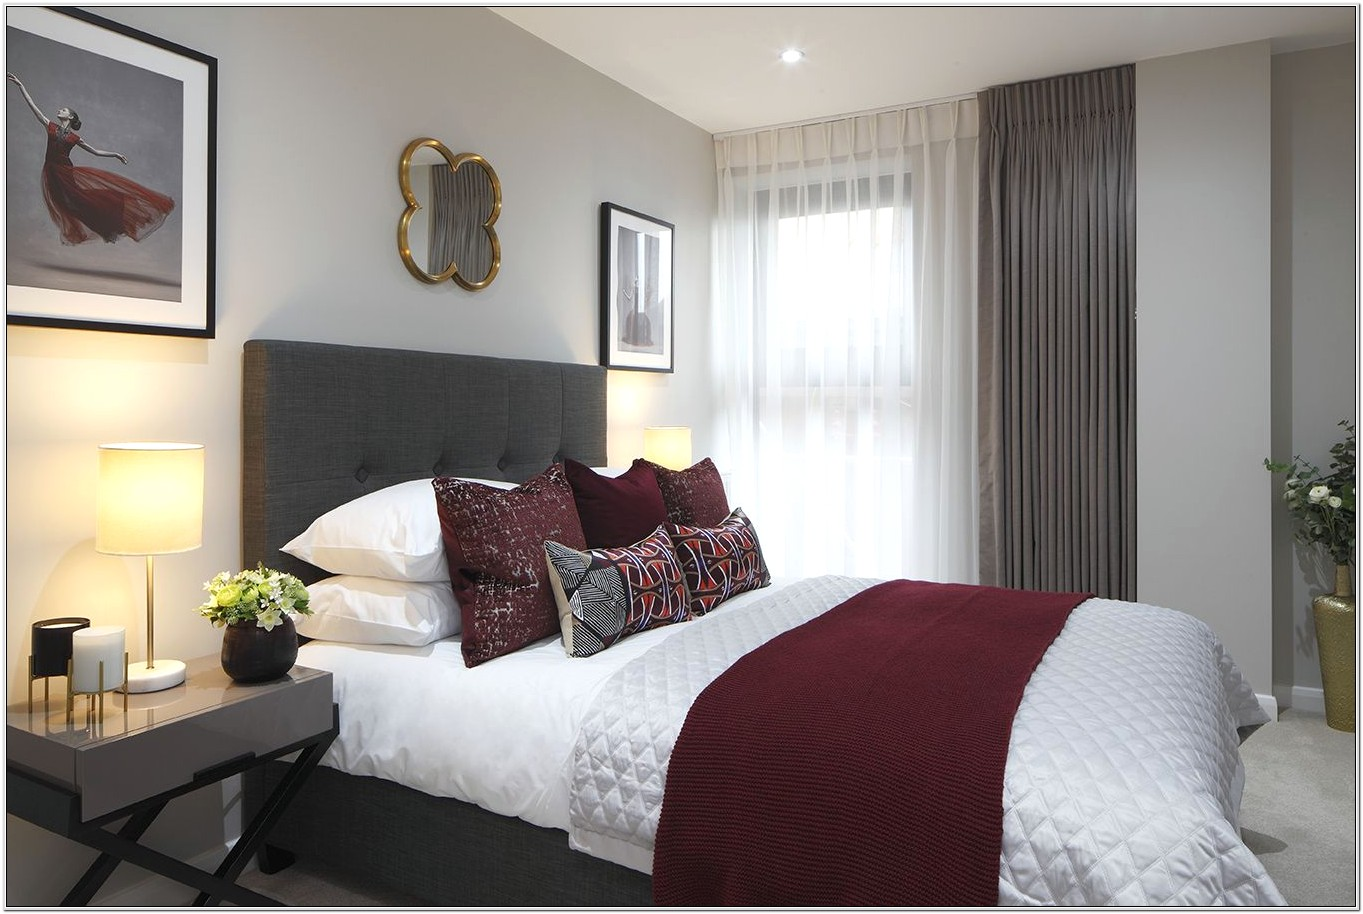 Bedroom Decorated With Burgundy